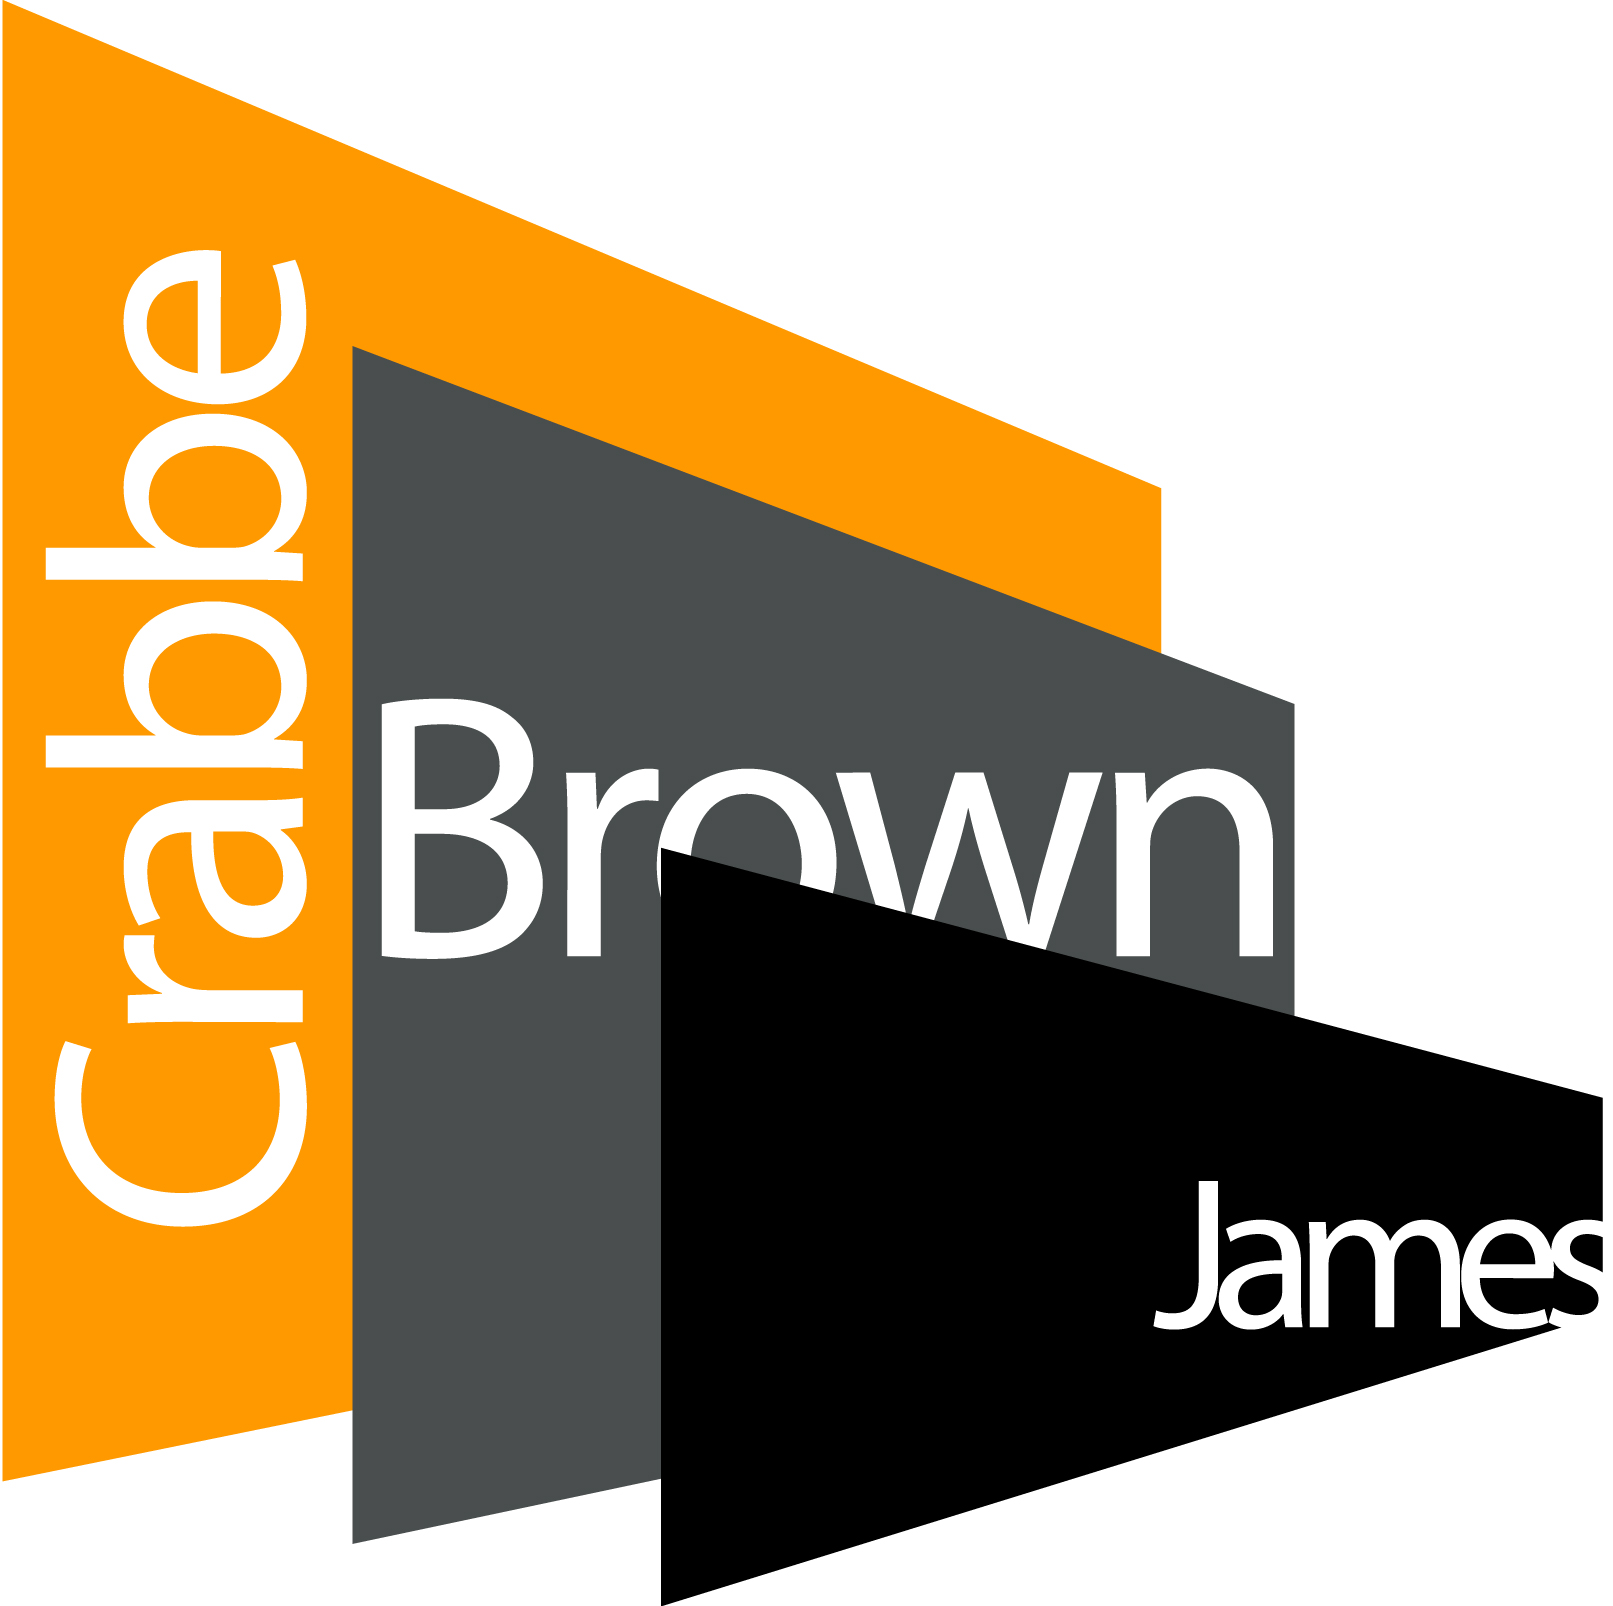 Crabbe Brown James